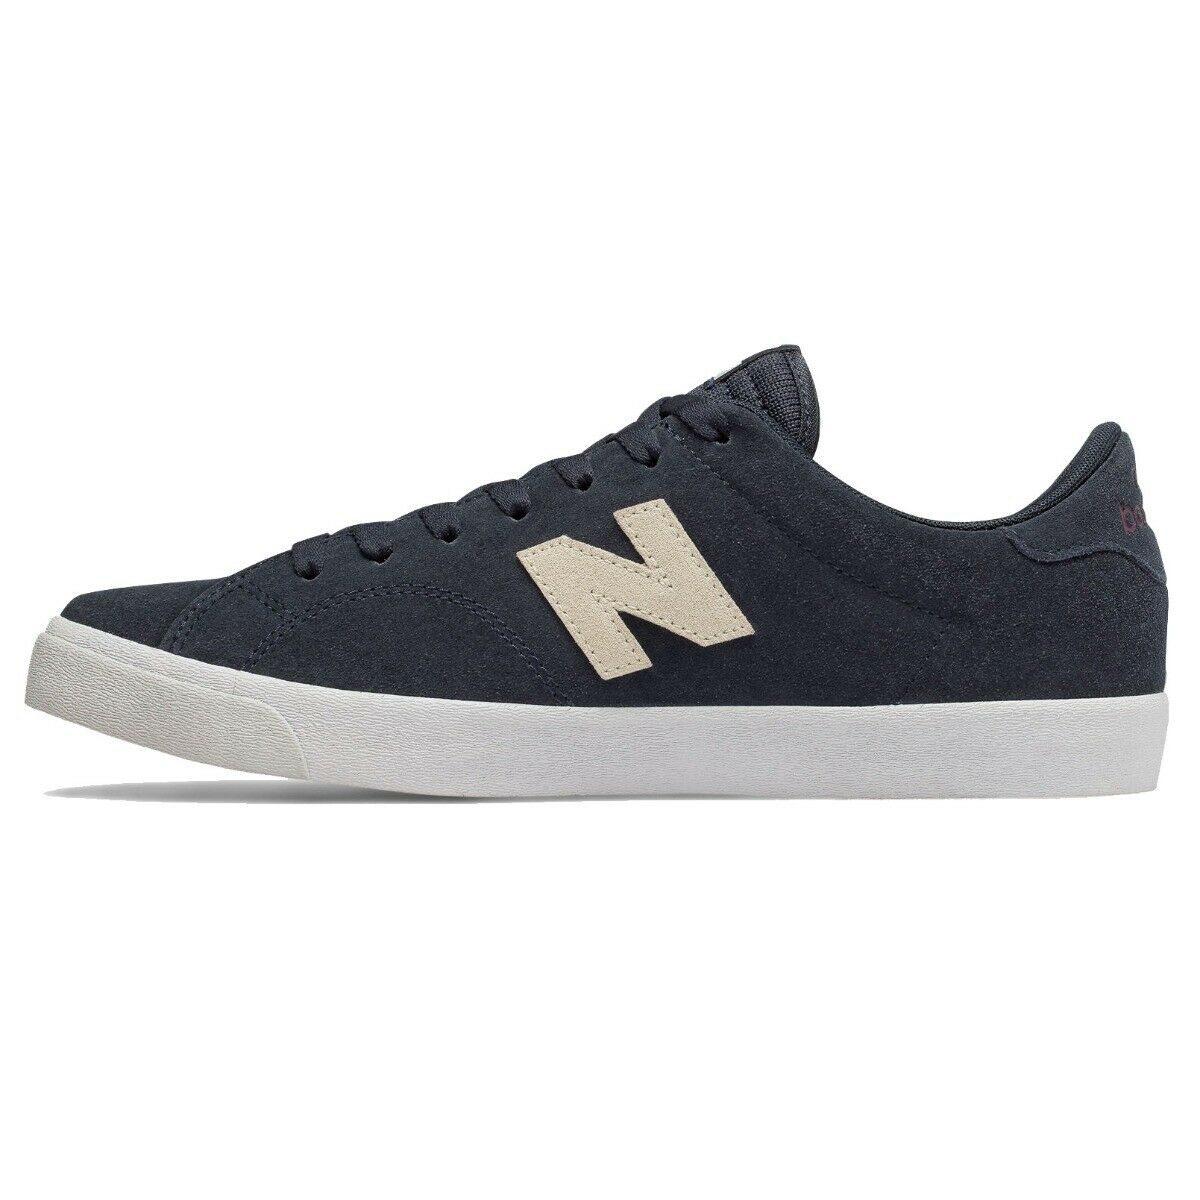 New Balance Nuovo da men 210 Tutti Coasts shoes - blue Scuro   Sale Marino